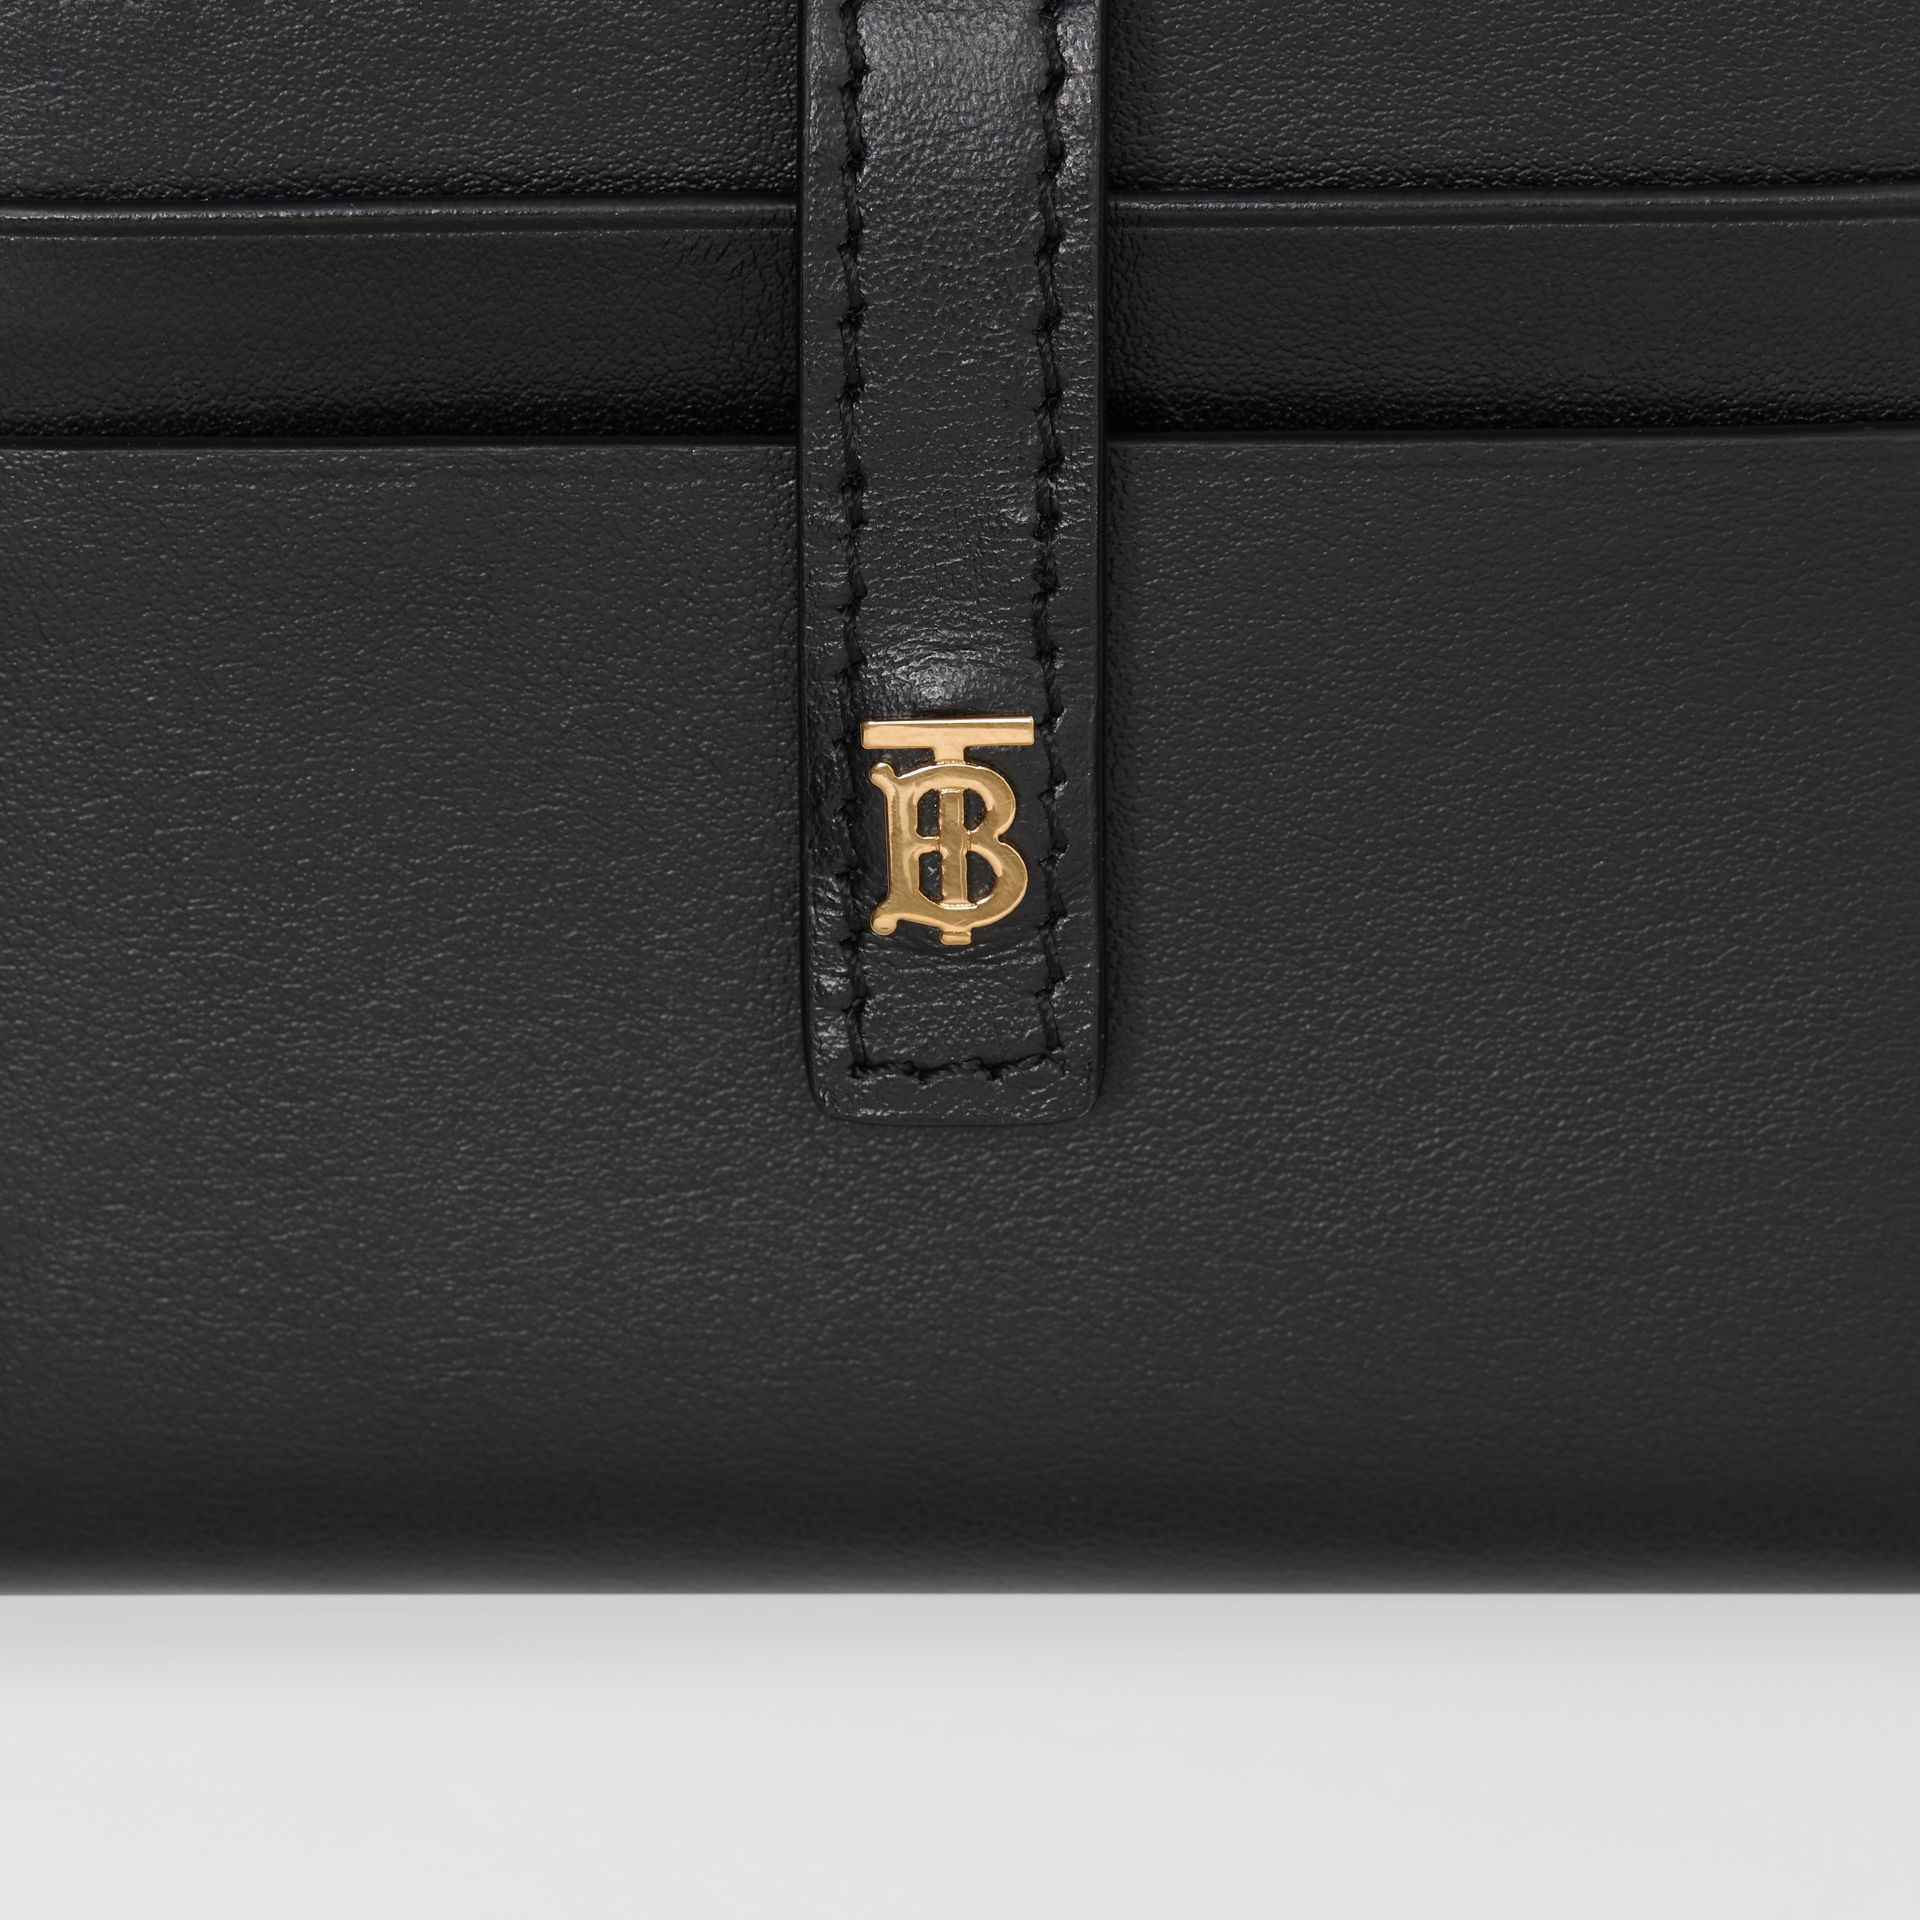 Monogram Motif Leather Folding Card Case in Black - Women | Burberry - gallery image 1